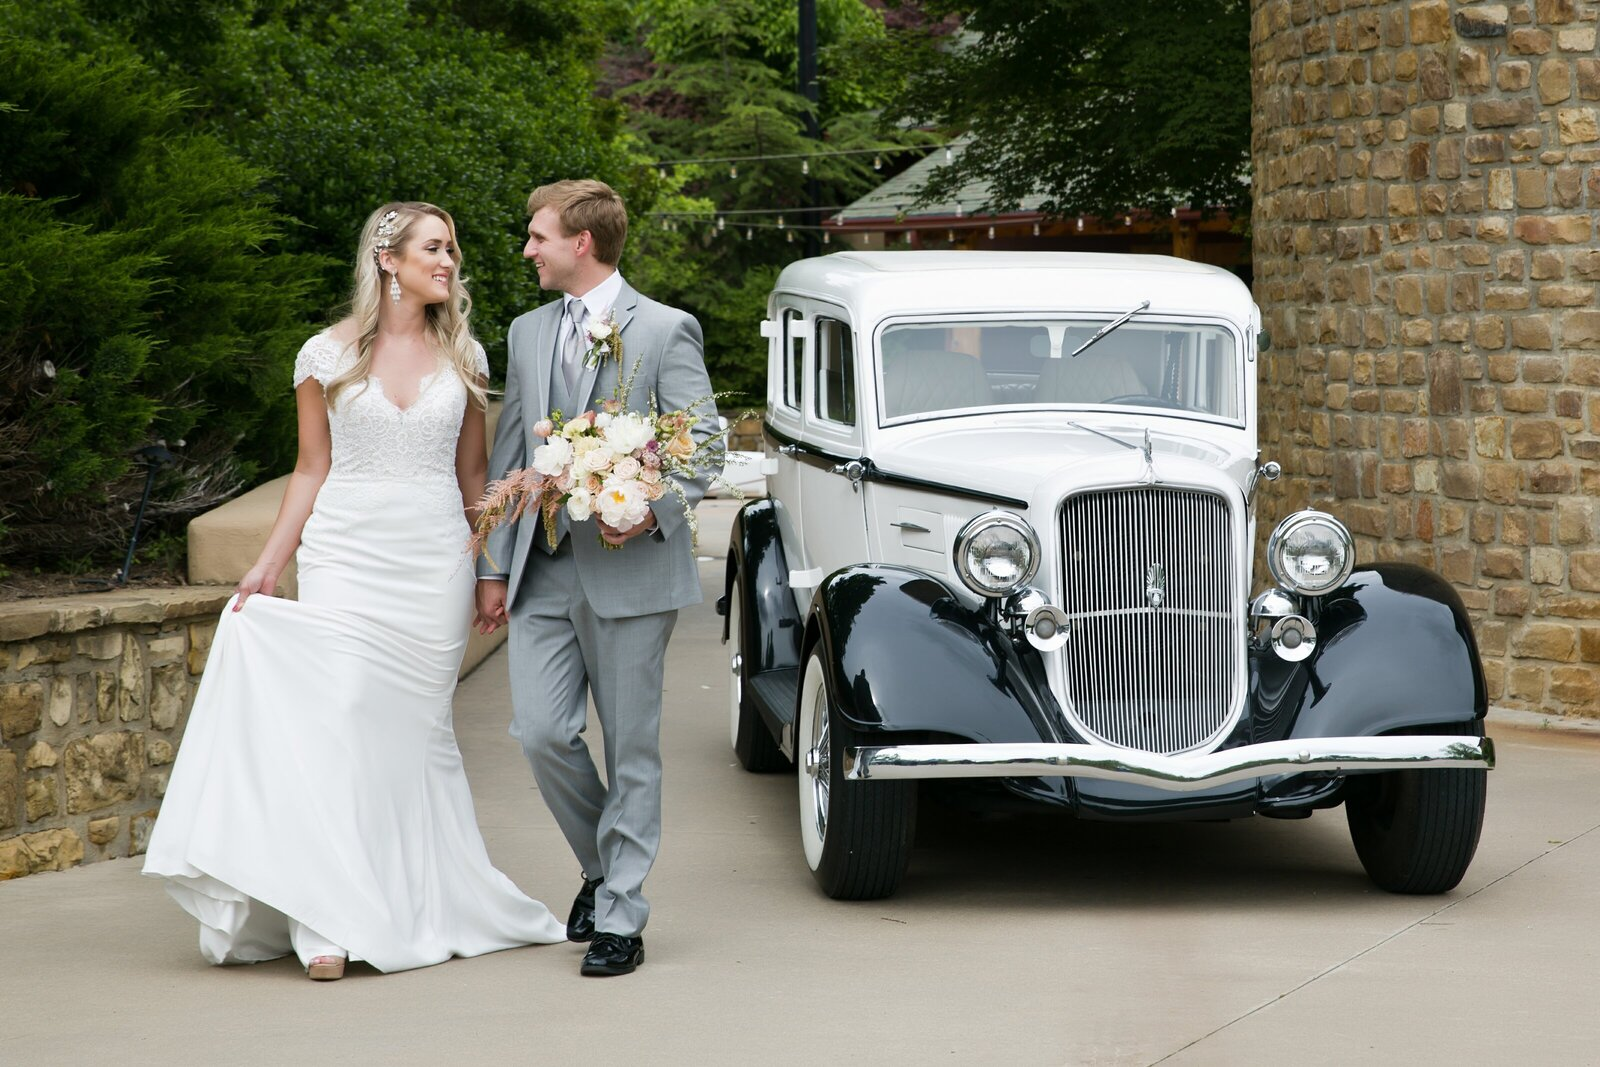 Emily Constance Photography is a Tulsa Wedding Photographer.  She also photographs weddings in Broken Arrow, OK and the surrounding areas.